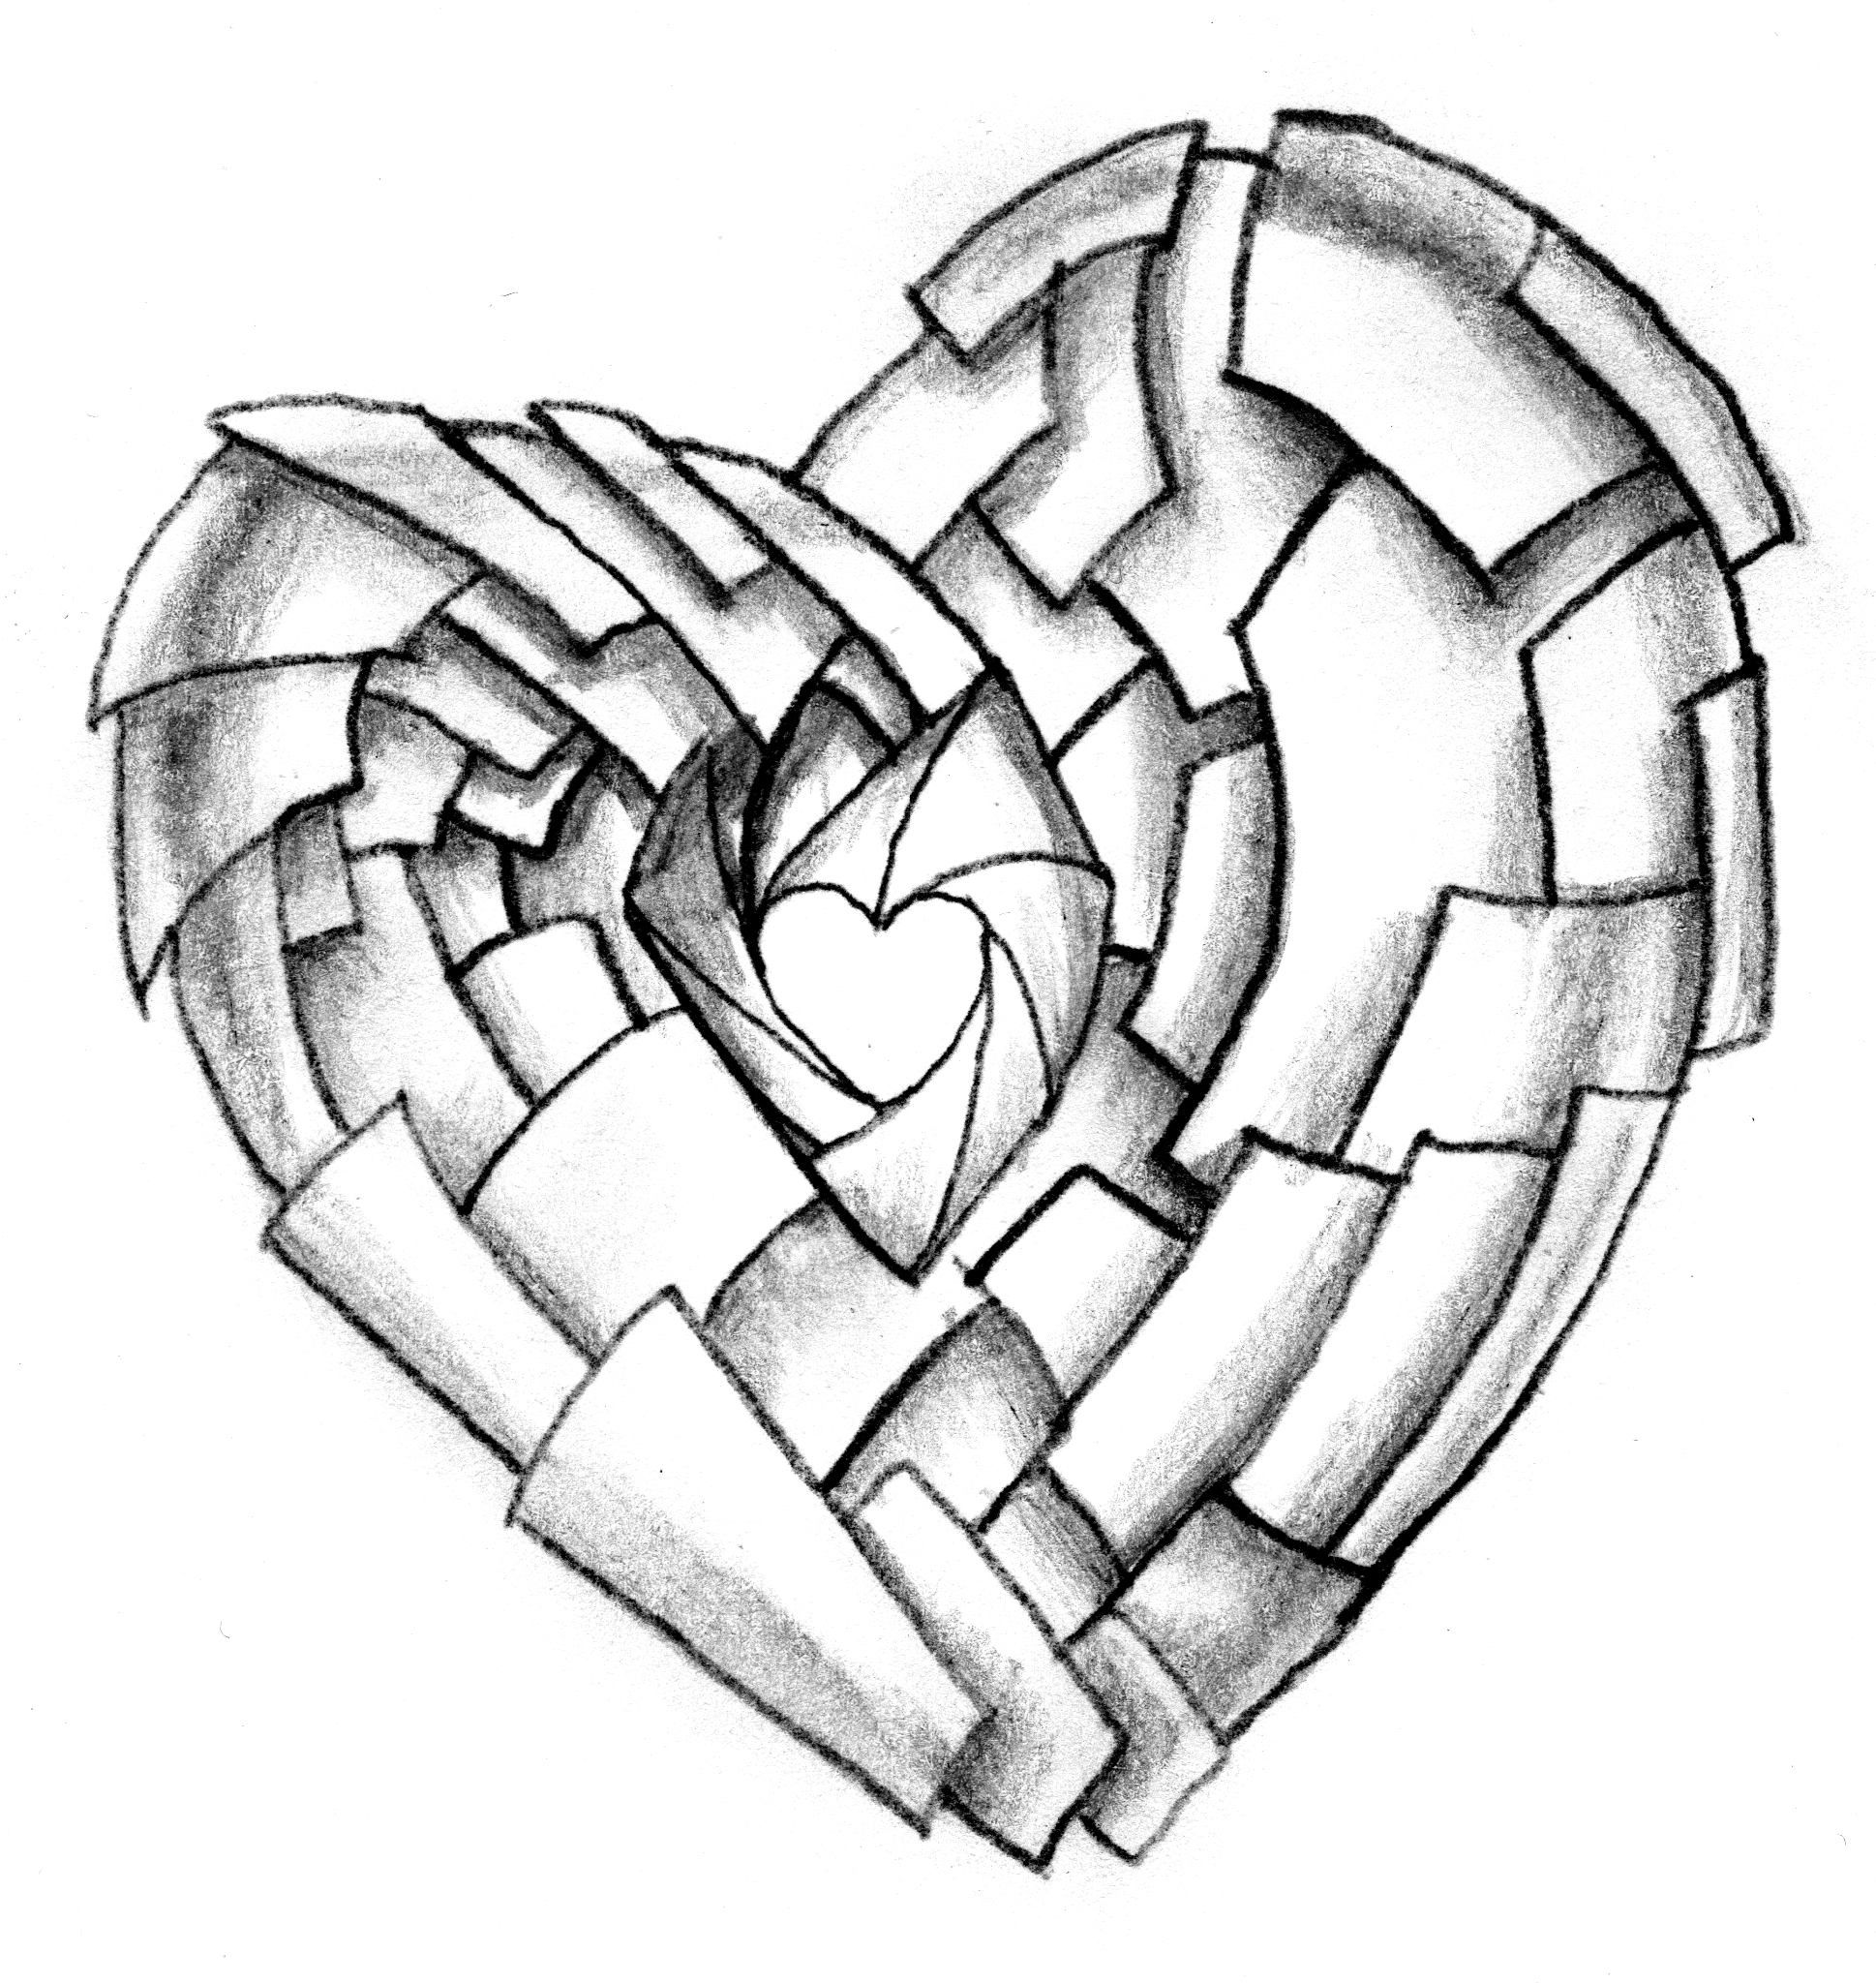 1938x2048 3d Broken Heart Drawing I Love You Drawings In Pencil With Heart